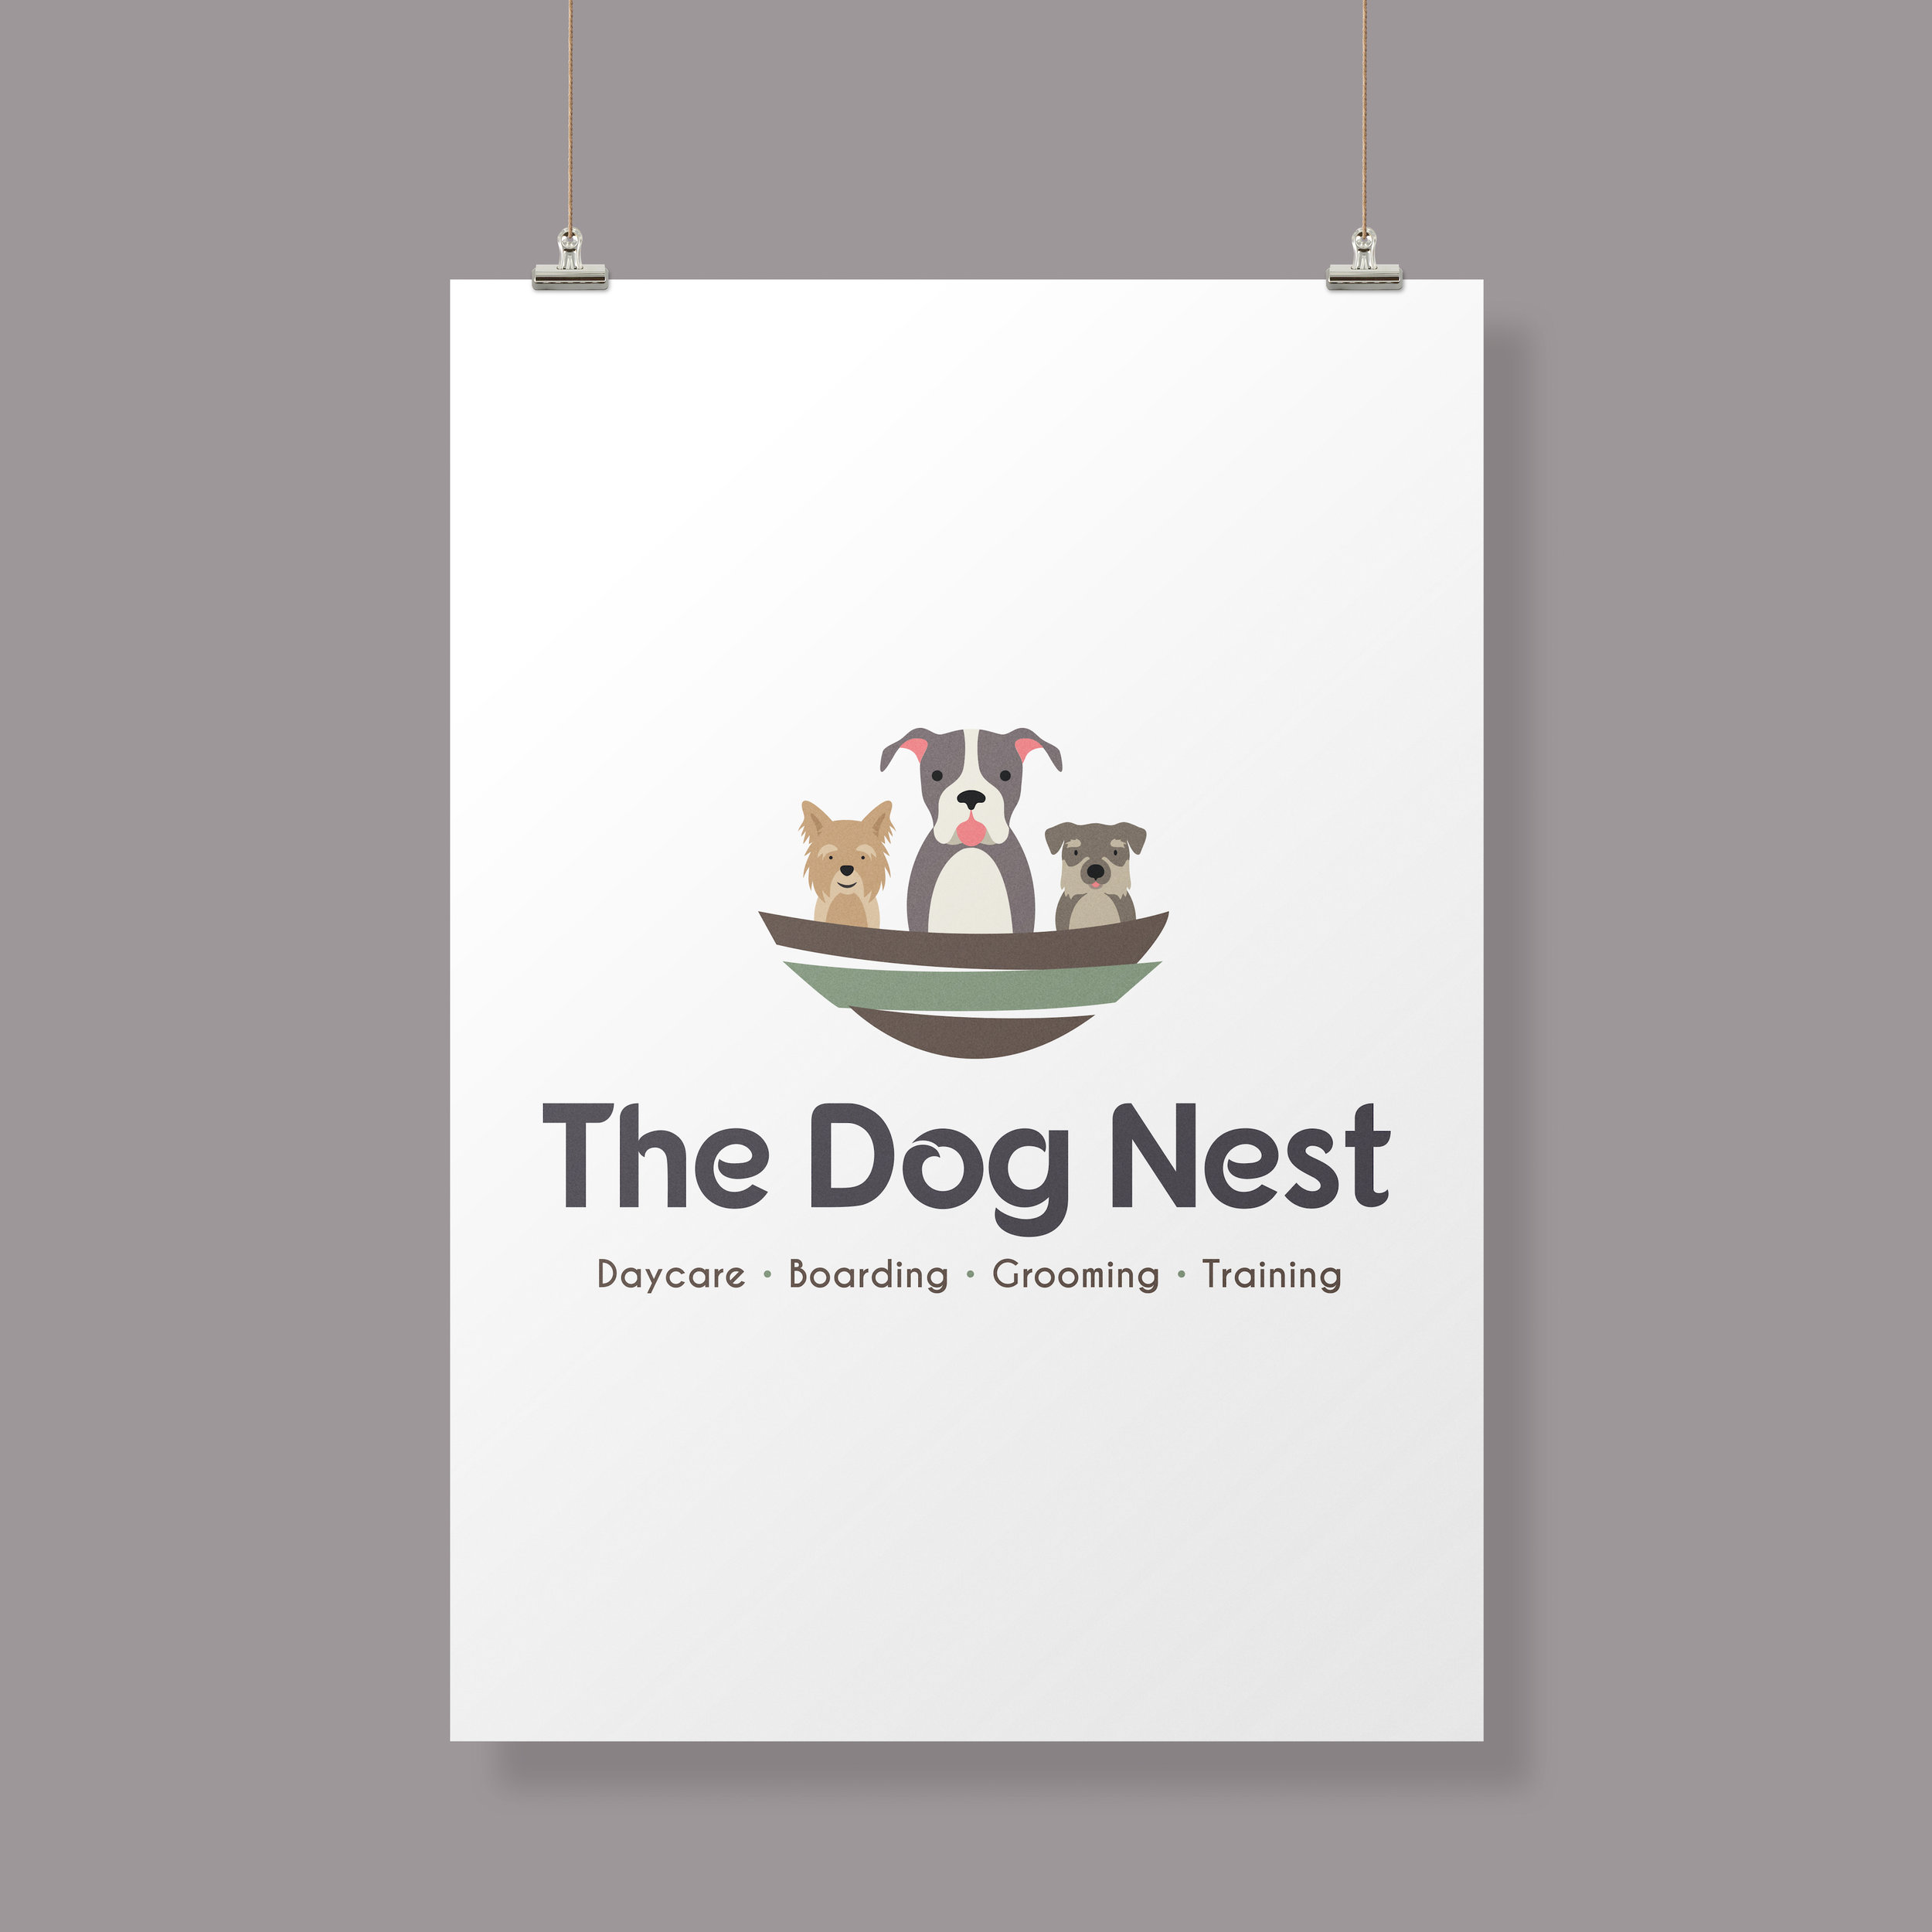 Golden-Antler-Design-Milwaukee-Web-Logo-Print-Branding-Graphic-Design-Creative-Services-The-Dog-Nest